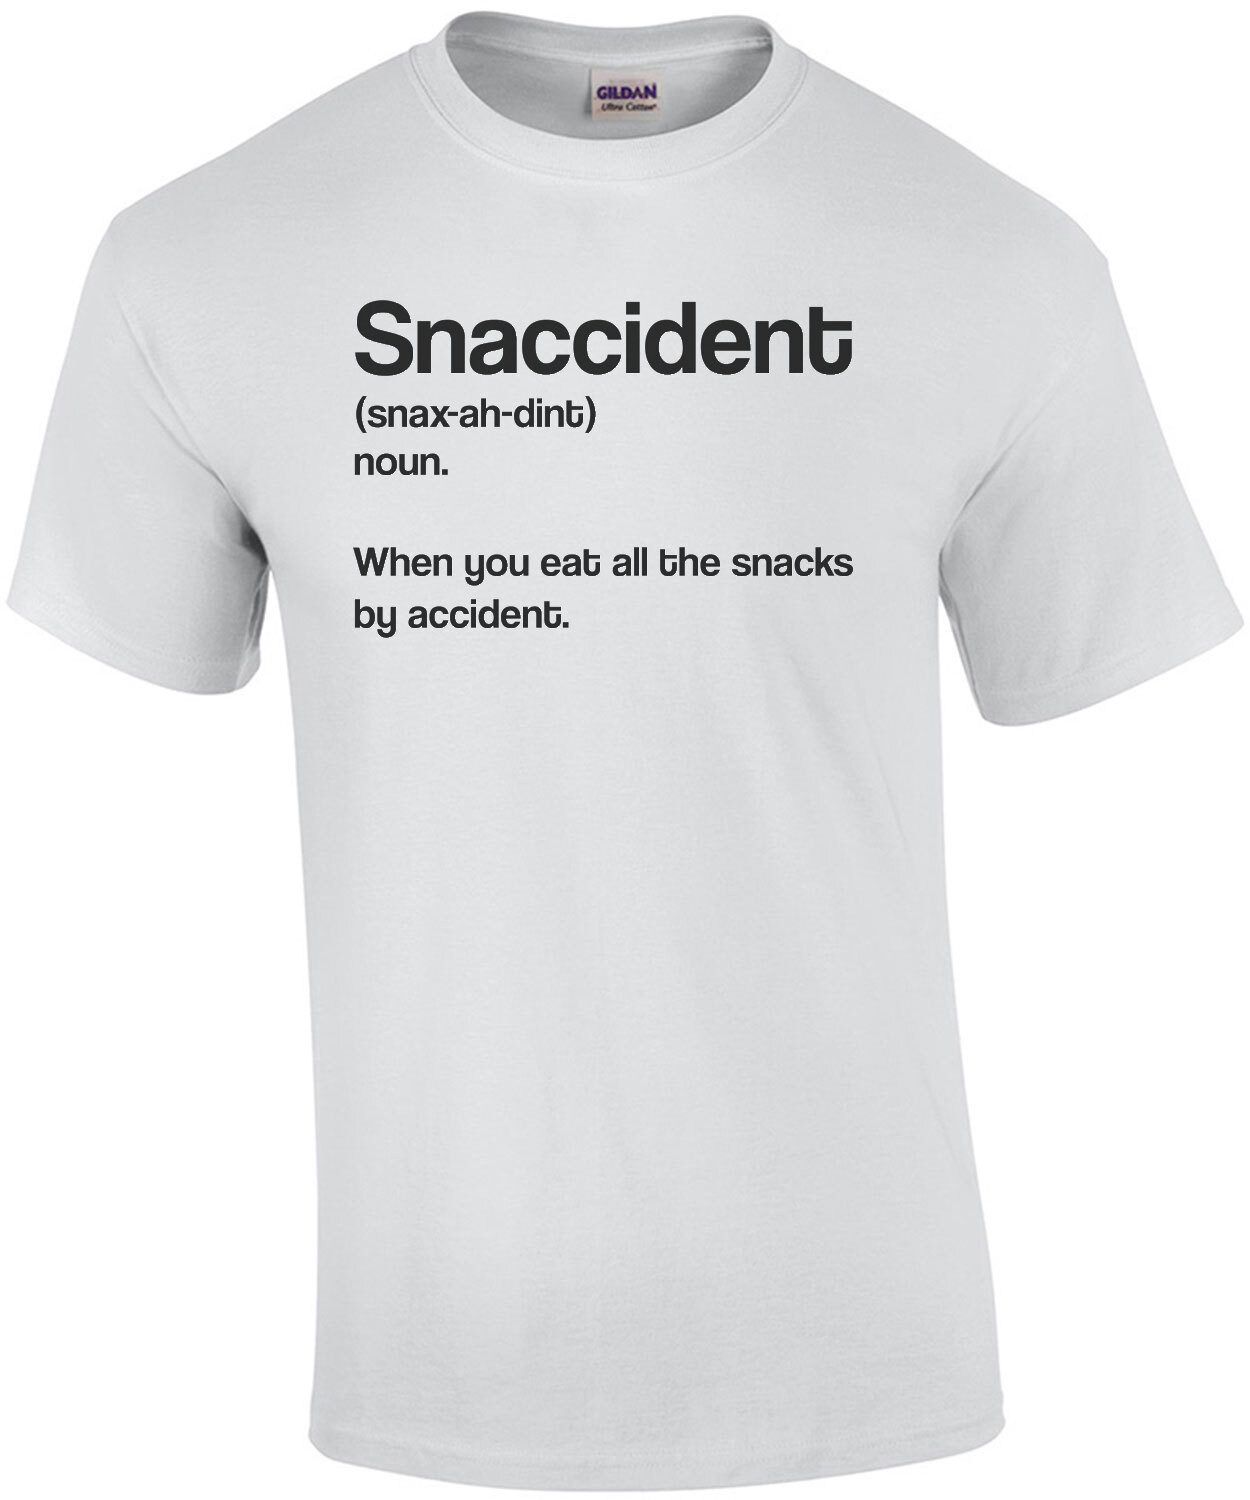 Snaccident - noun - When you eat all the snacks by accident - fat guy -  funny t-shirt